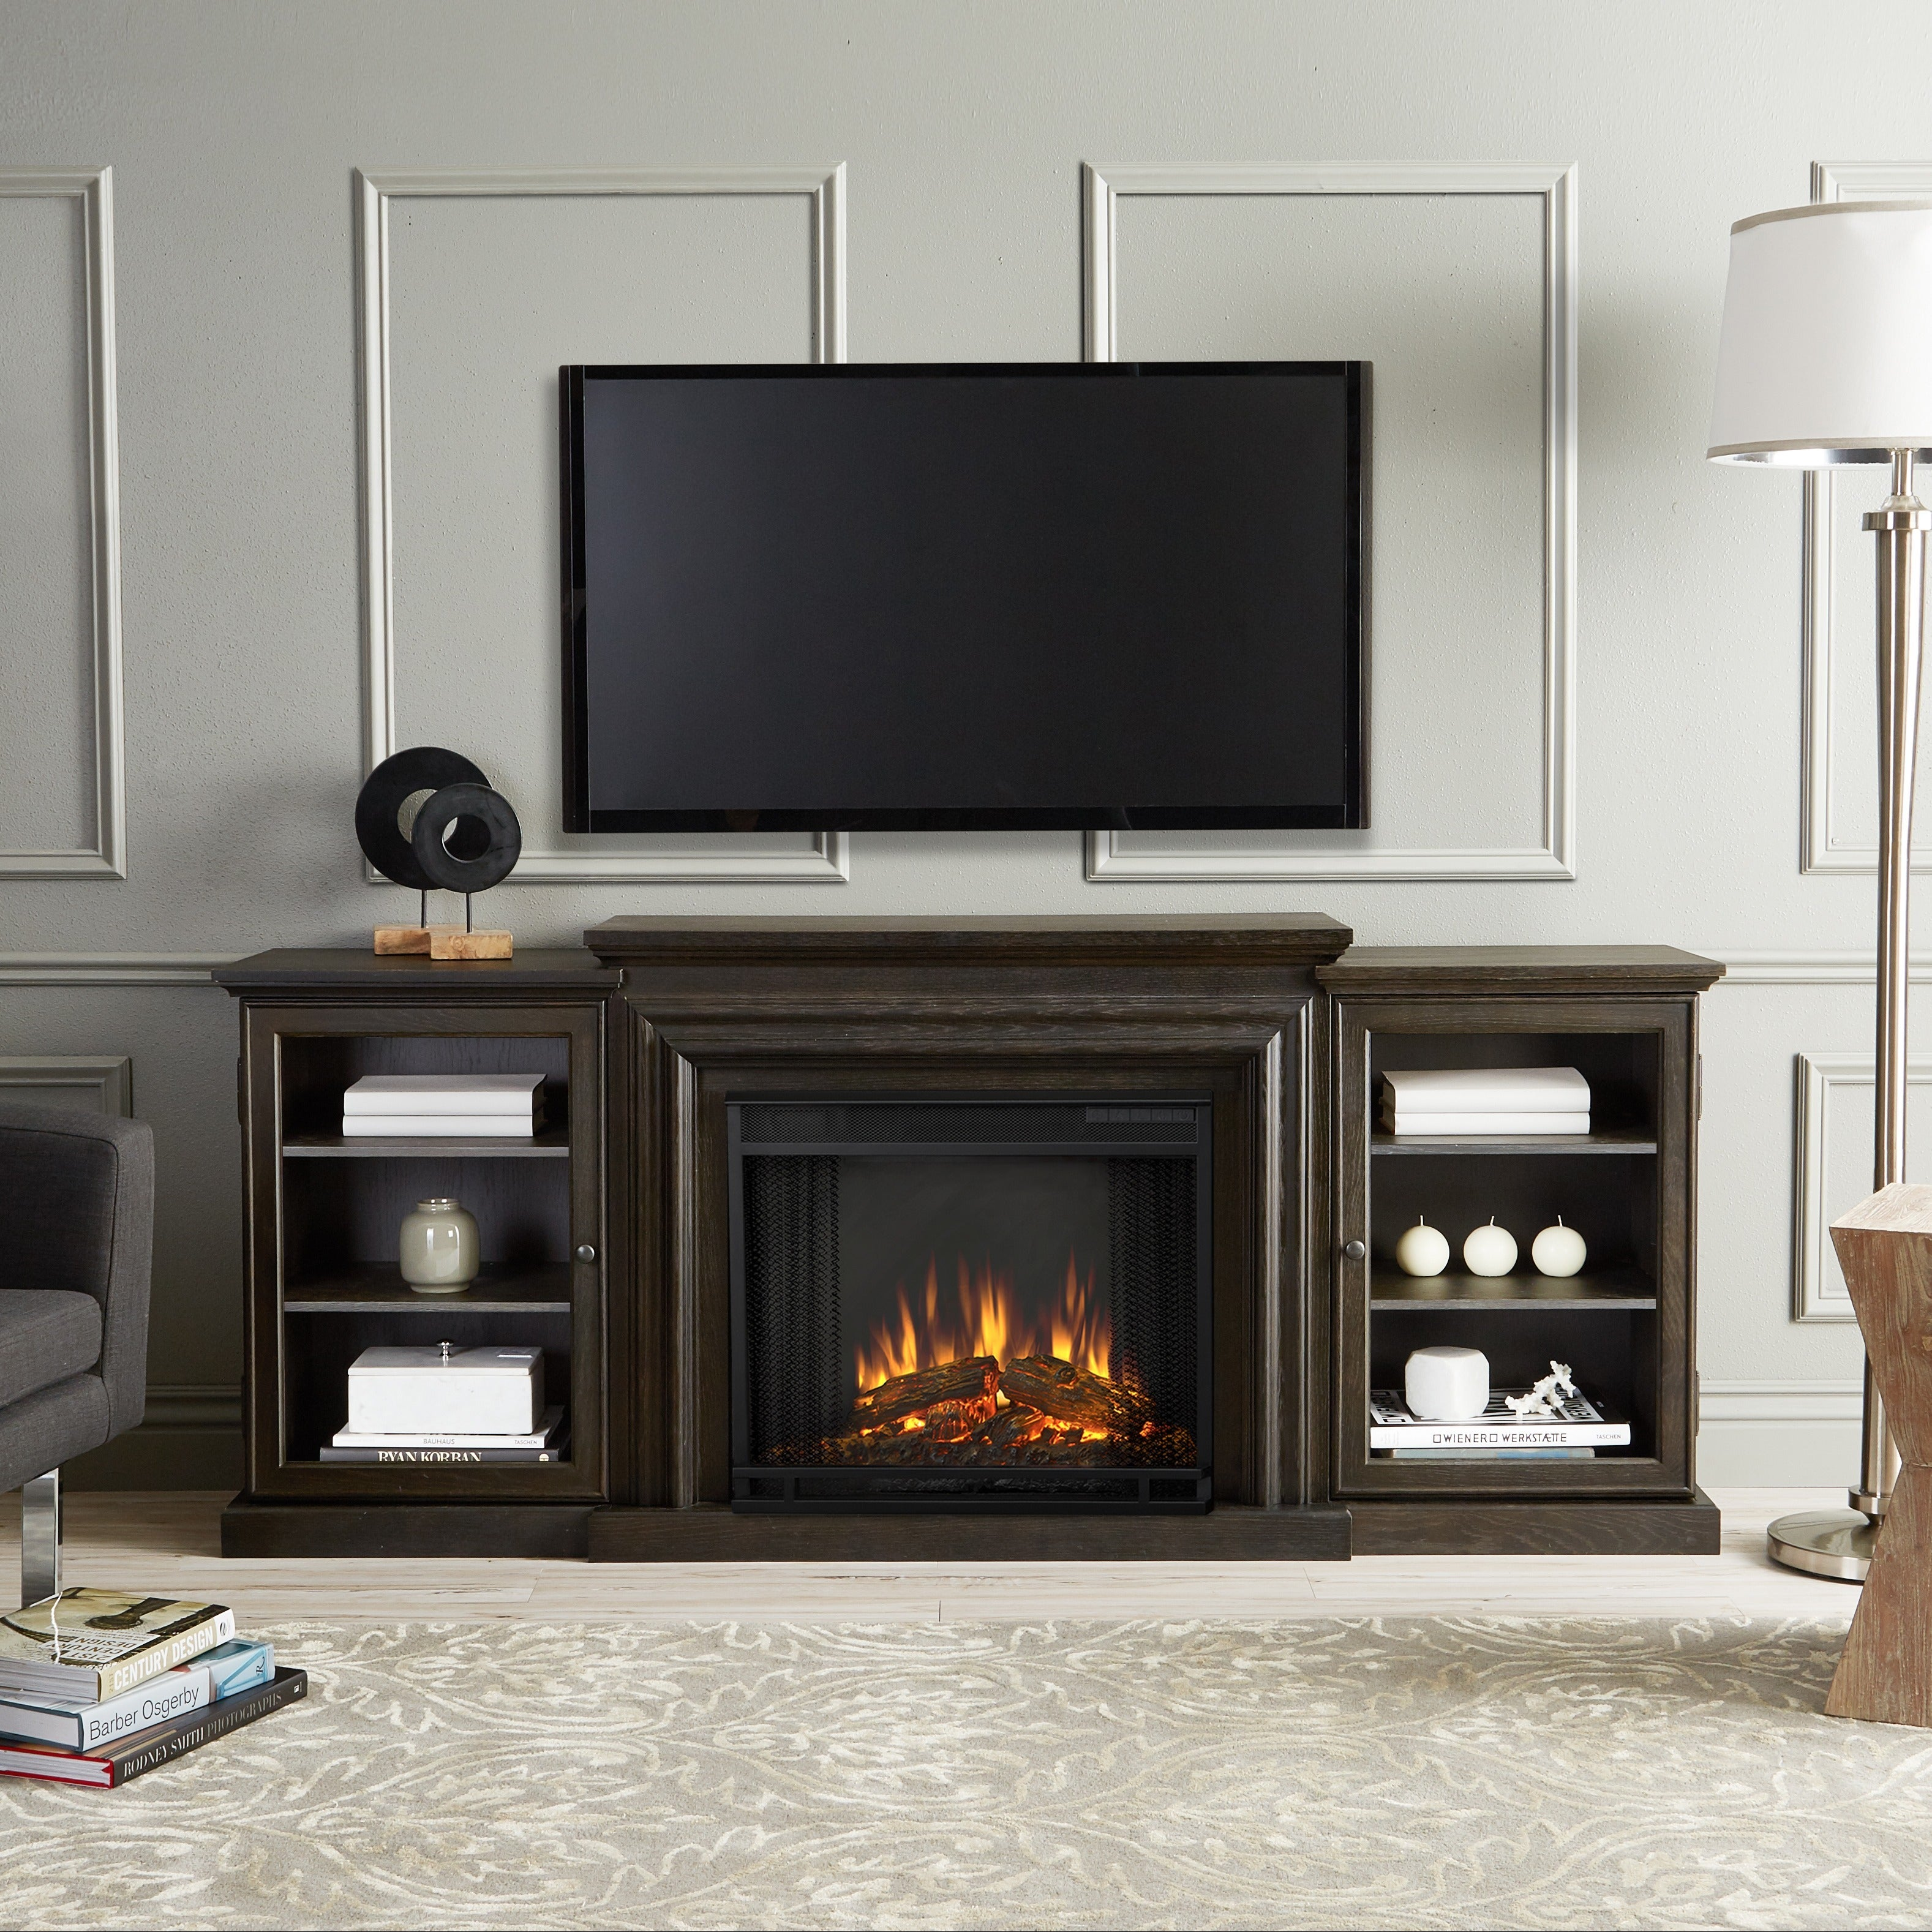 to for finishes stand media multiple center com electric with up tvs ip wood walmart fireplace tv